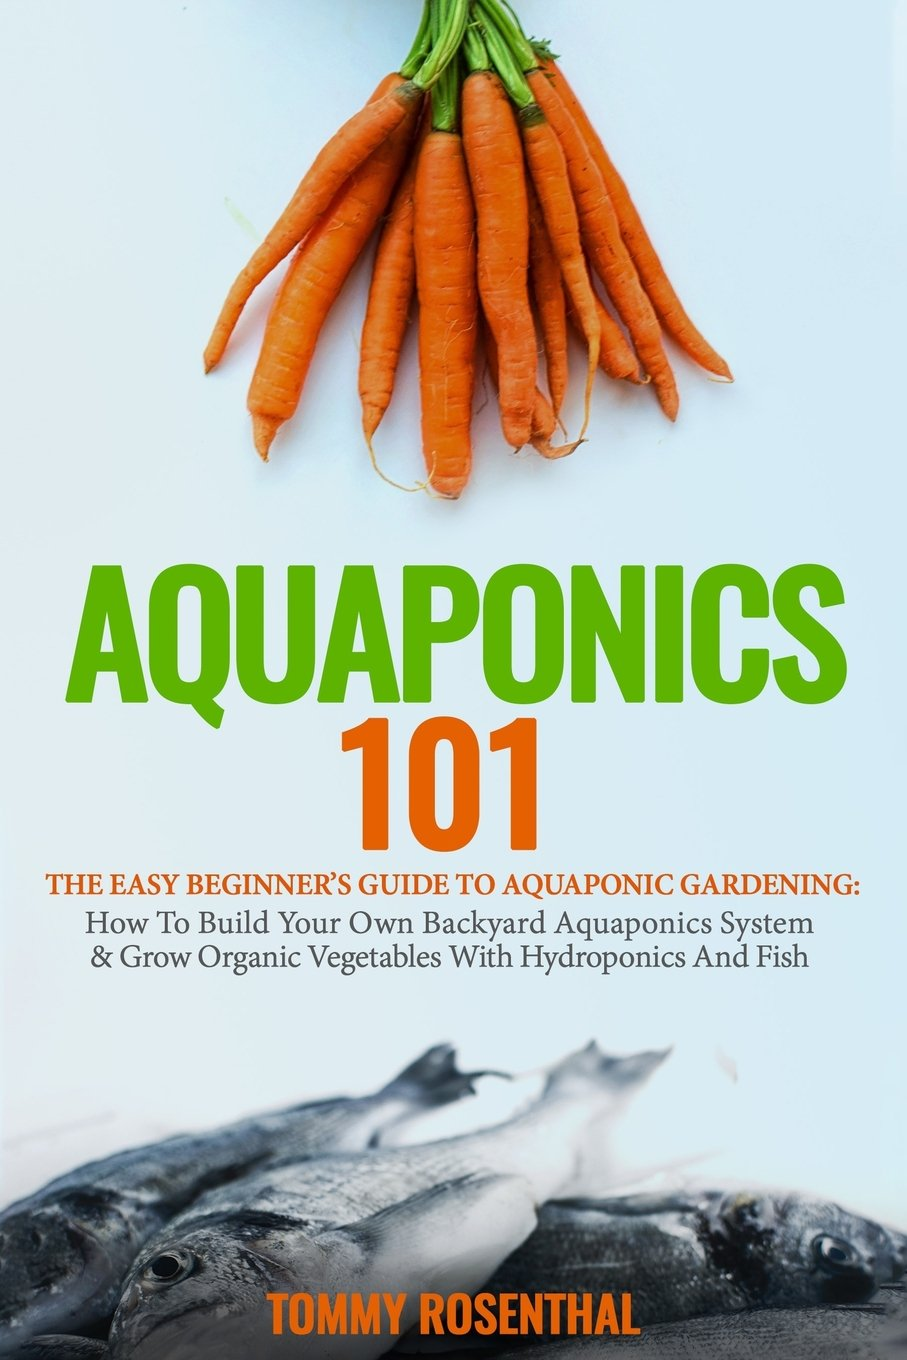 Aquaponics 101: The Easy Beginner's Guide to Aquaponic Gardening:  How To Build Your Own Backyard Aquaponics System and Grow Organic Vegetables With Hydroponics And Fish (Gardening Books) (Volume 1)